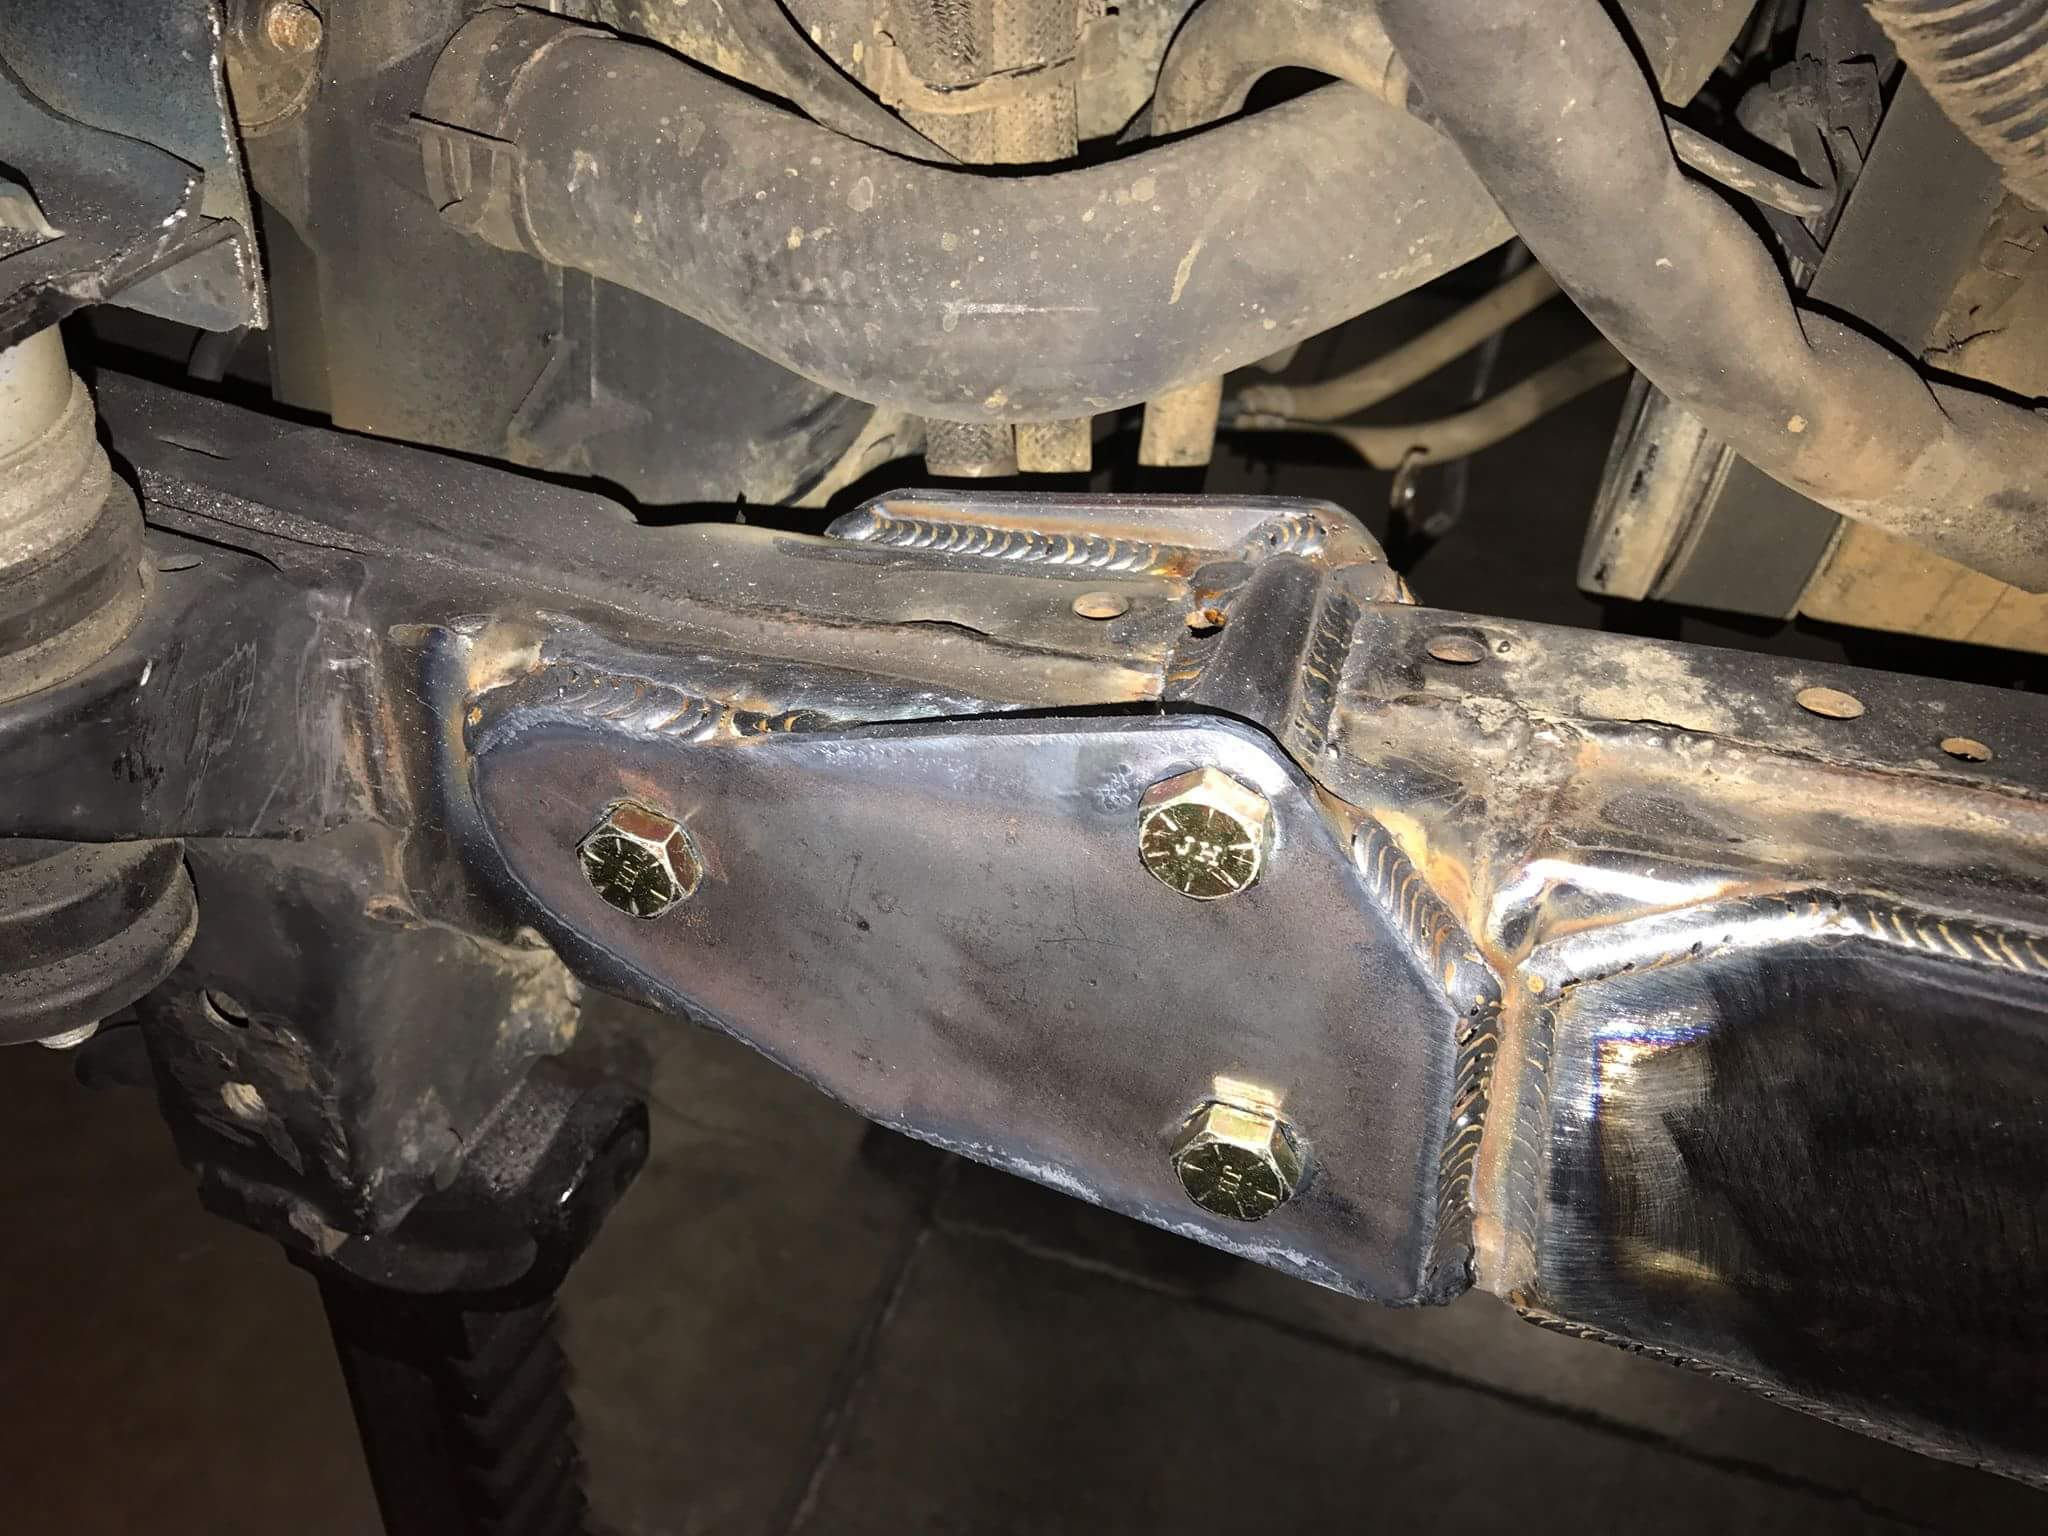 fj cruiser arb bull bar fitting instructions